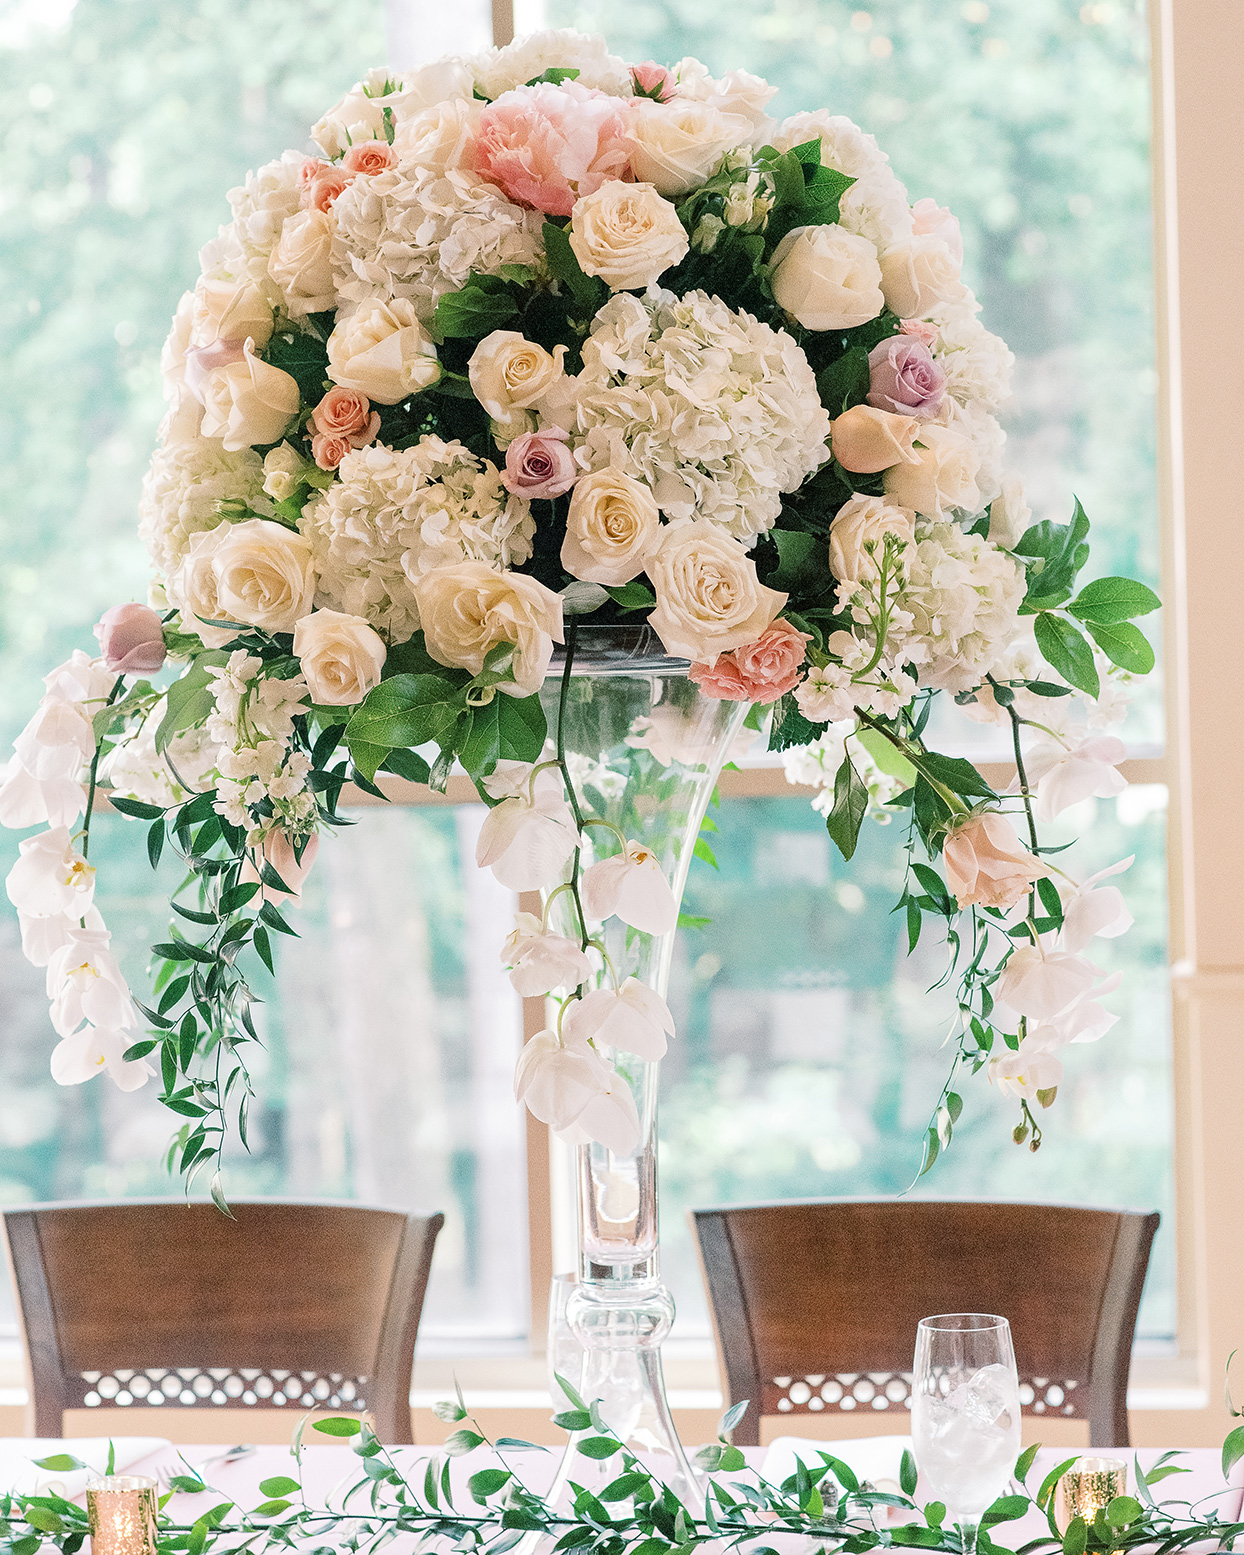 Luxuriant Floral Design